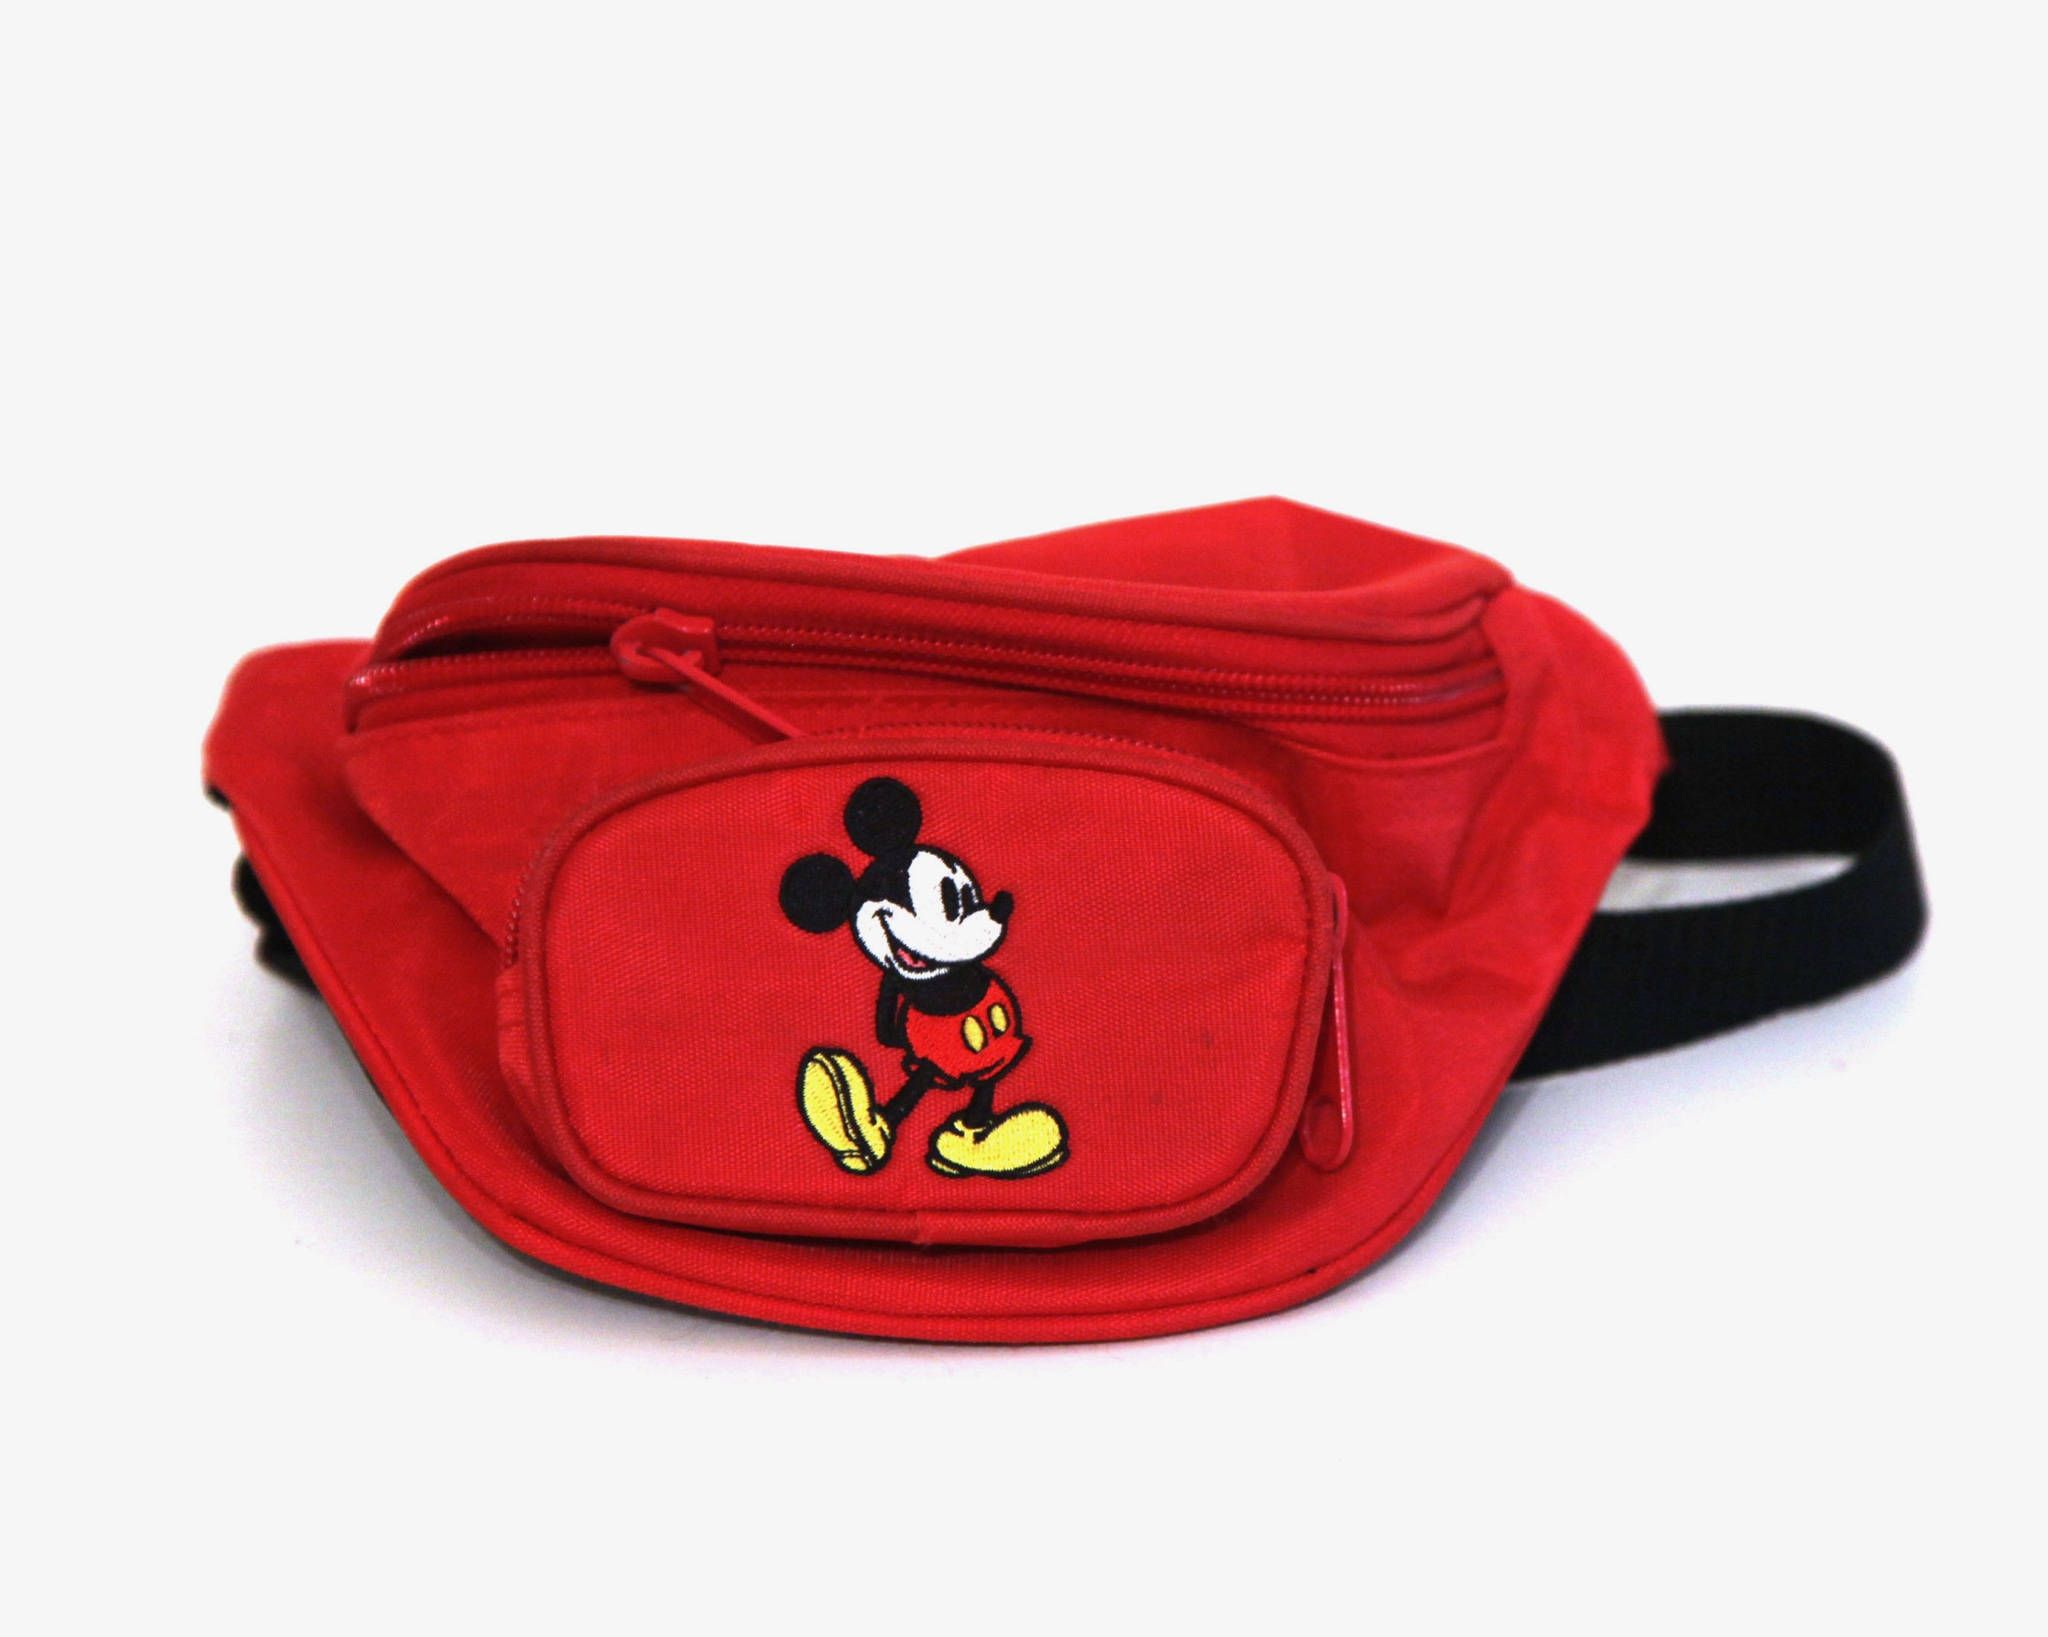 2168c06db2a Vintage 80s hip sack fanny pack Mickey Mouse Disneynylon waist pack l by  216vintageModern on Etsy